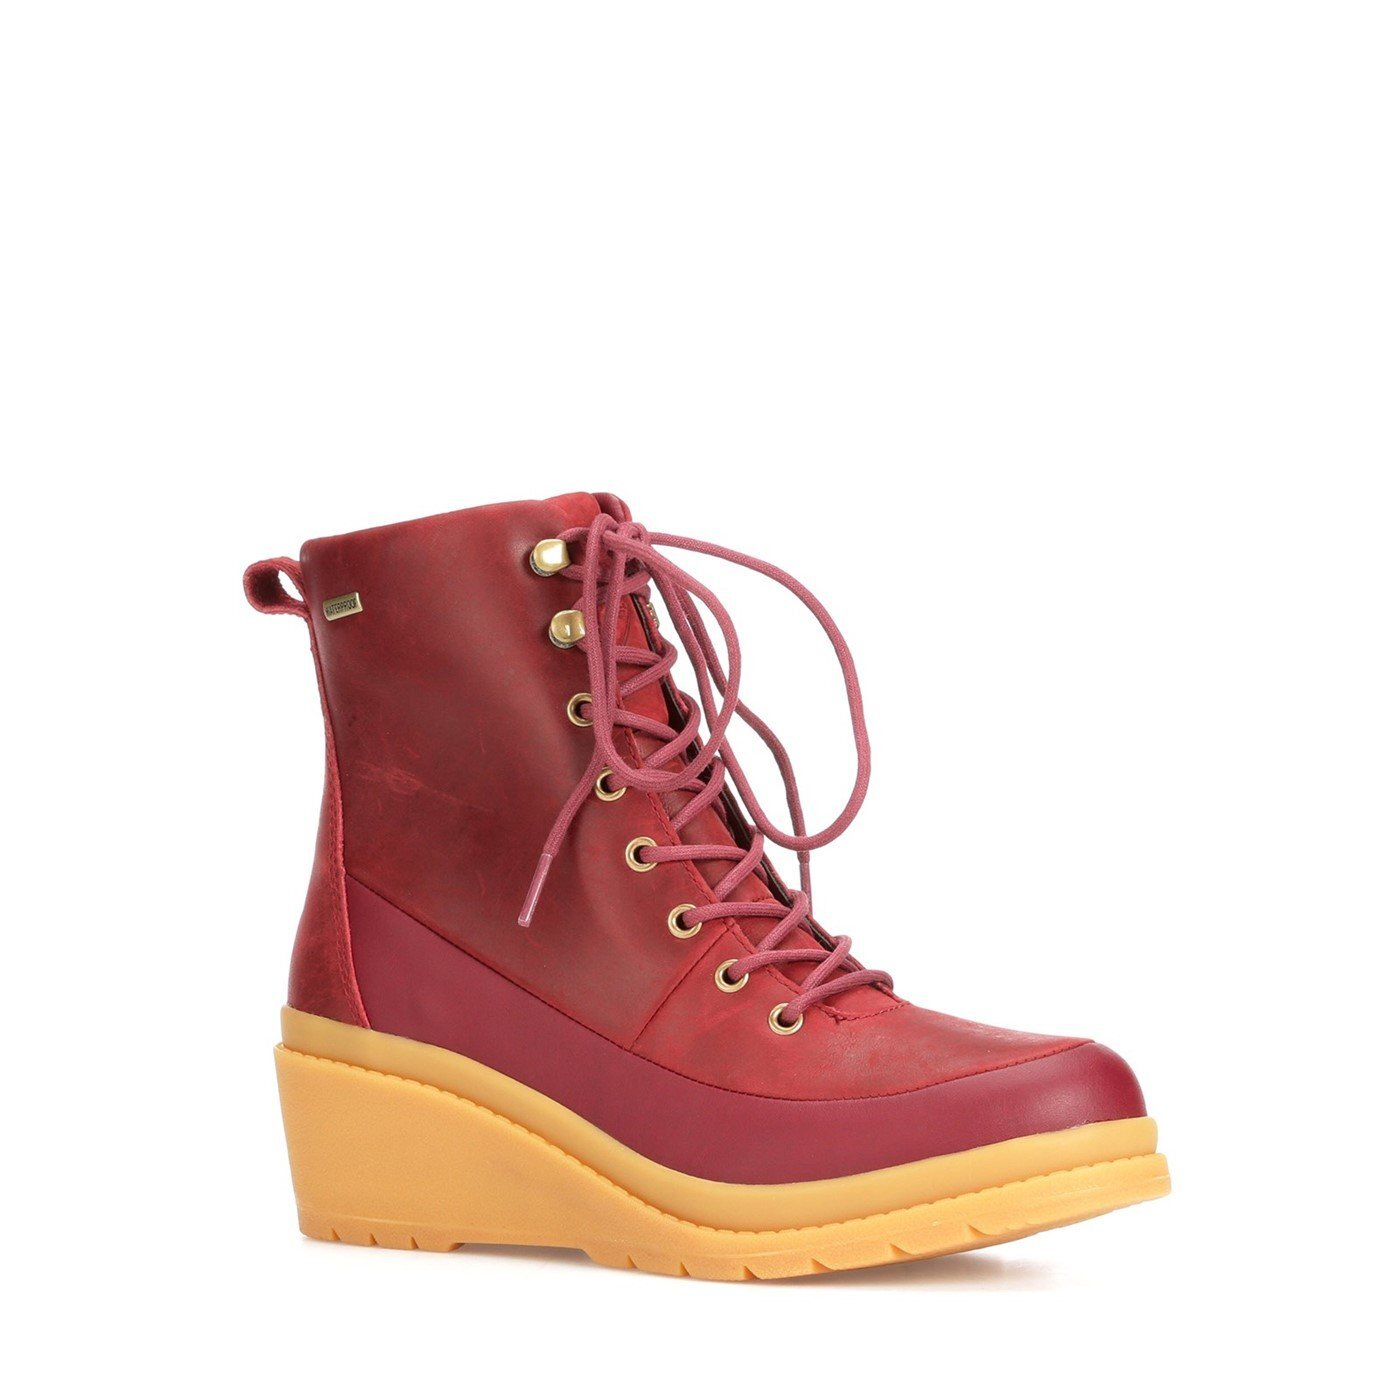 Muck Boots Womens/Ladies Liberty Leather Wedge Ankle Boots (8 UK) (Burgundy/Yellow)